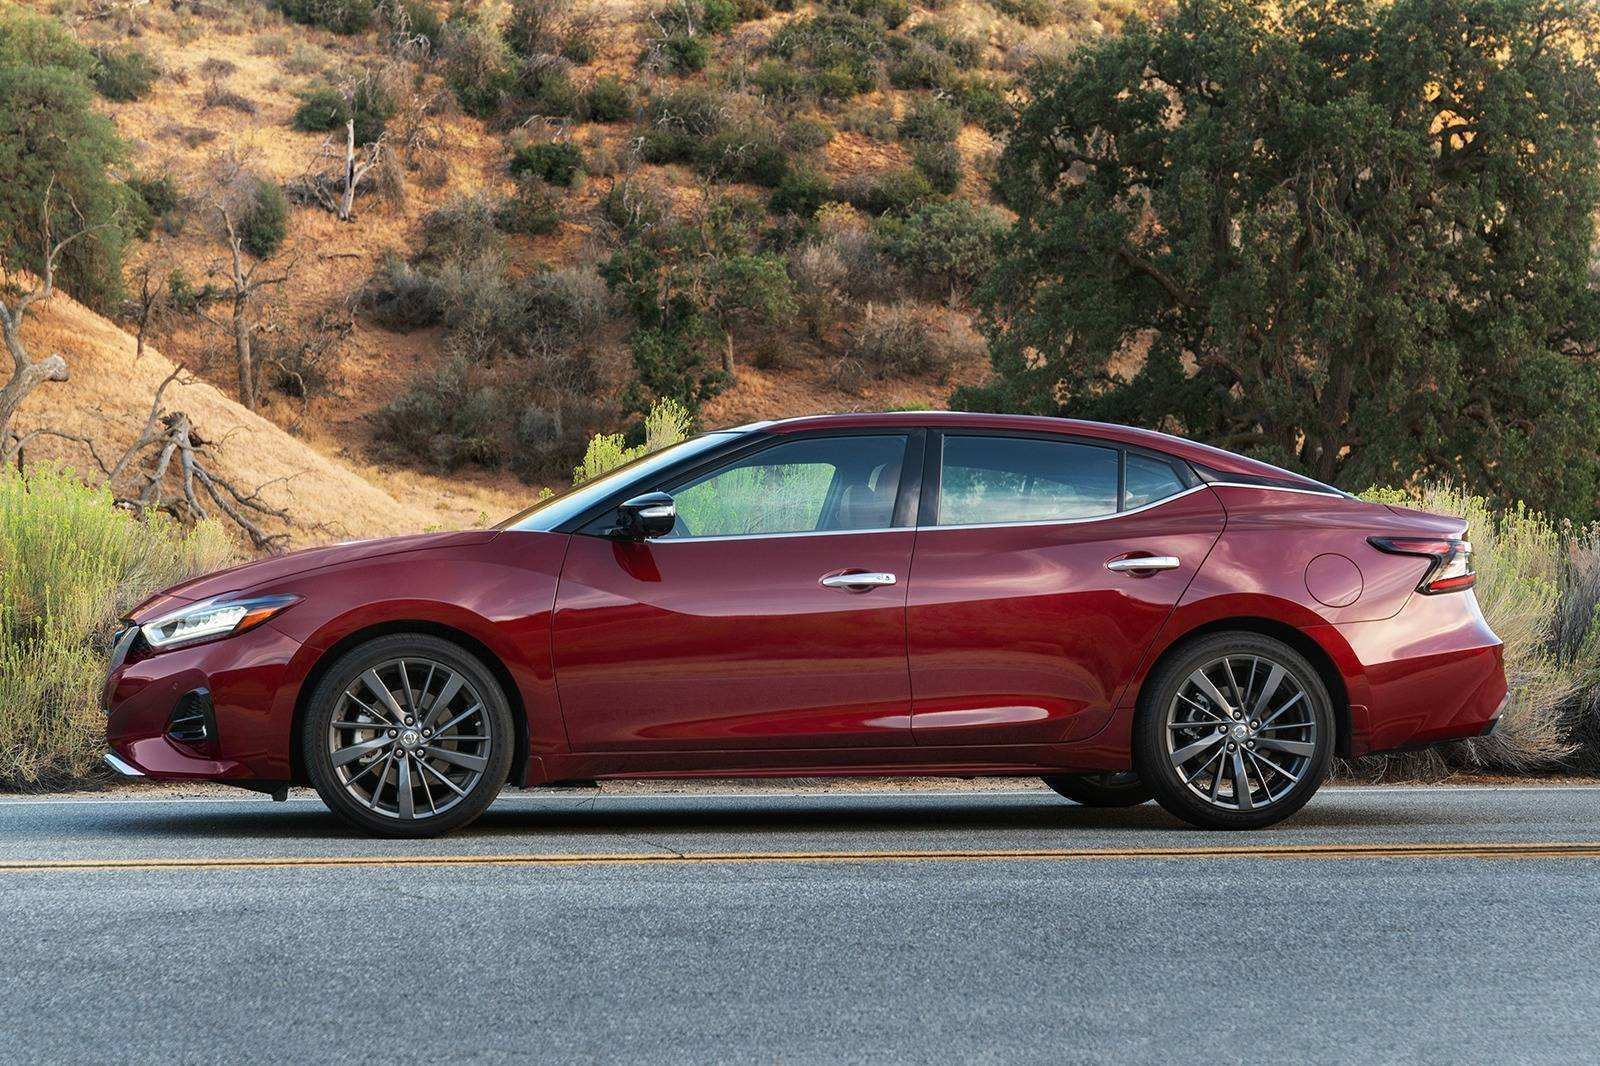 34 Best 2019 Nissan Maxima Price And Release Date